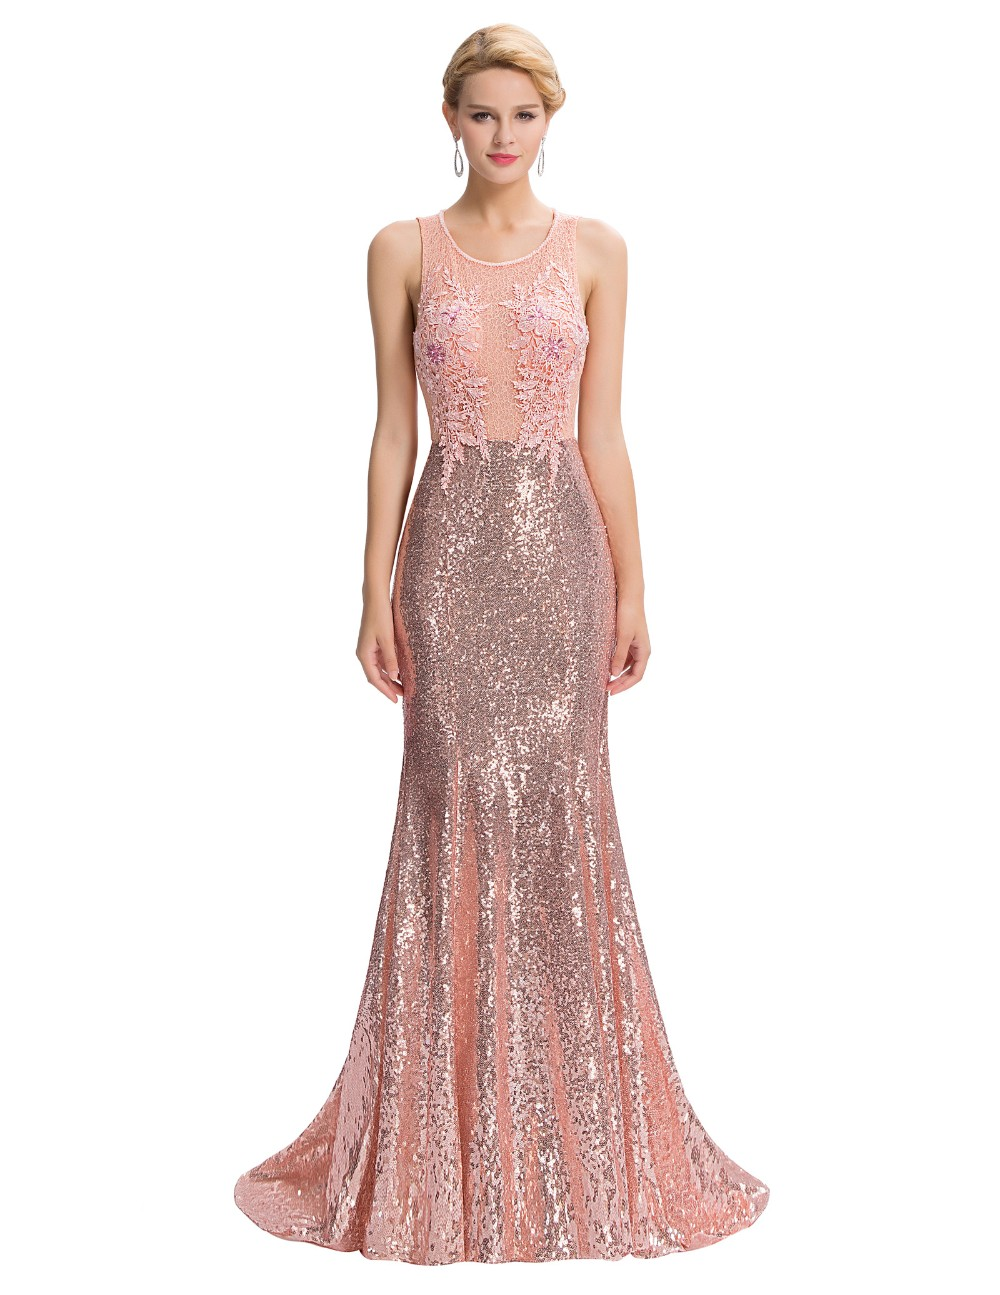 Elegant Pink Sequin Floor Length Backless Lace Mermaid Evening Dress 2